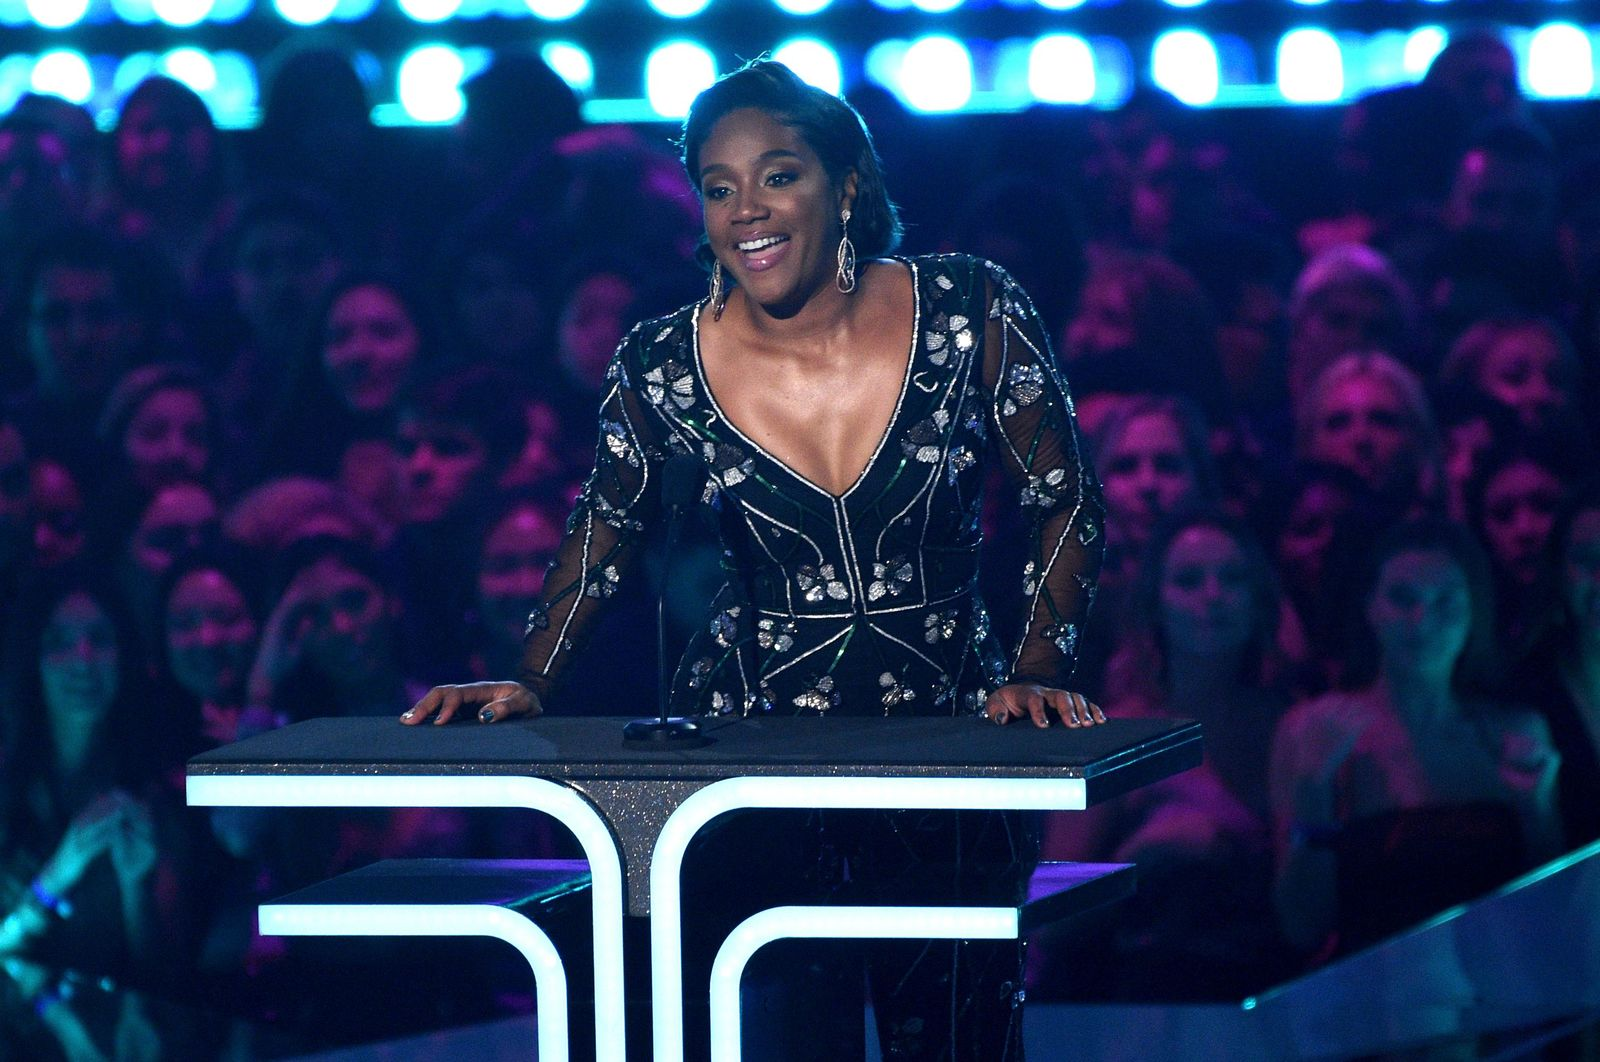 Tiffany Haddish presents the trailblazer award at the MTV Movie and TV Awards on Saturday, June 15, 2019, at the Barker Hangar in Santa Monica, Calif. (Photo by Chris Pizzello/Invision/AP)